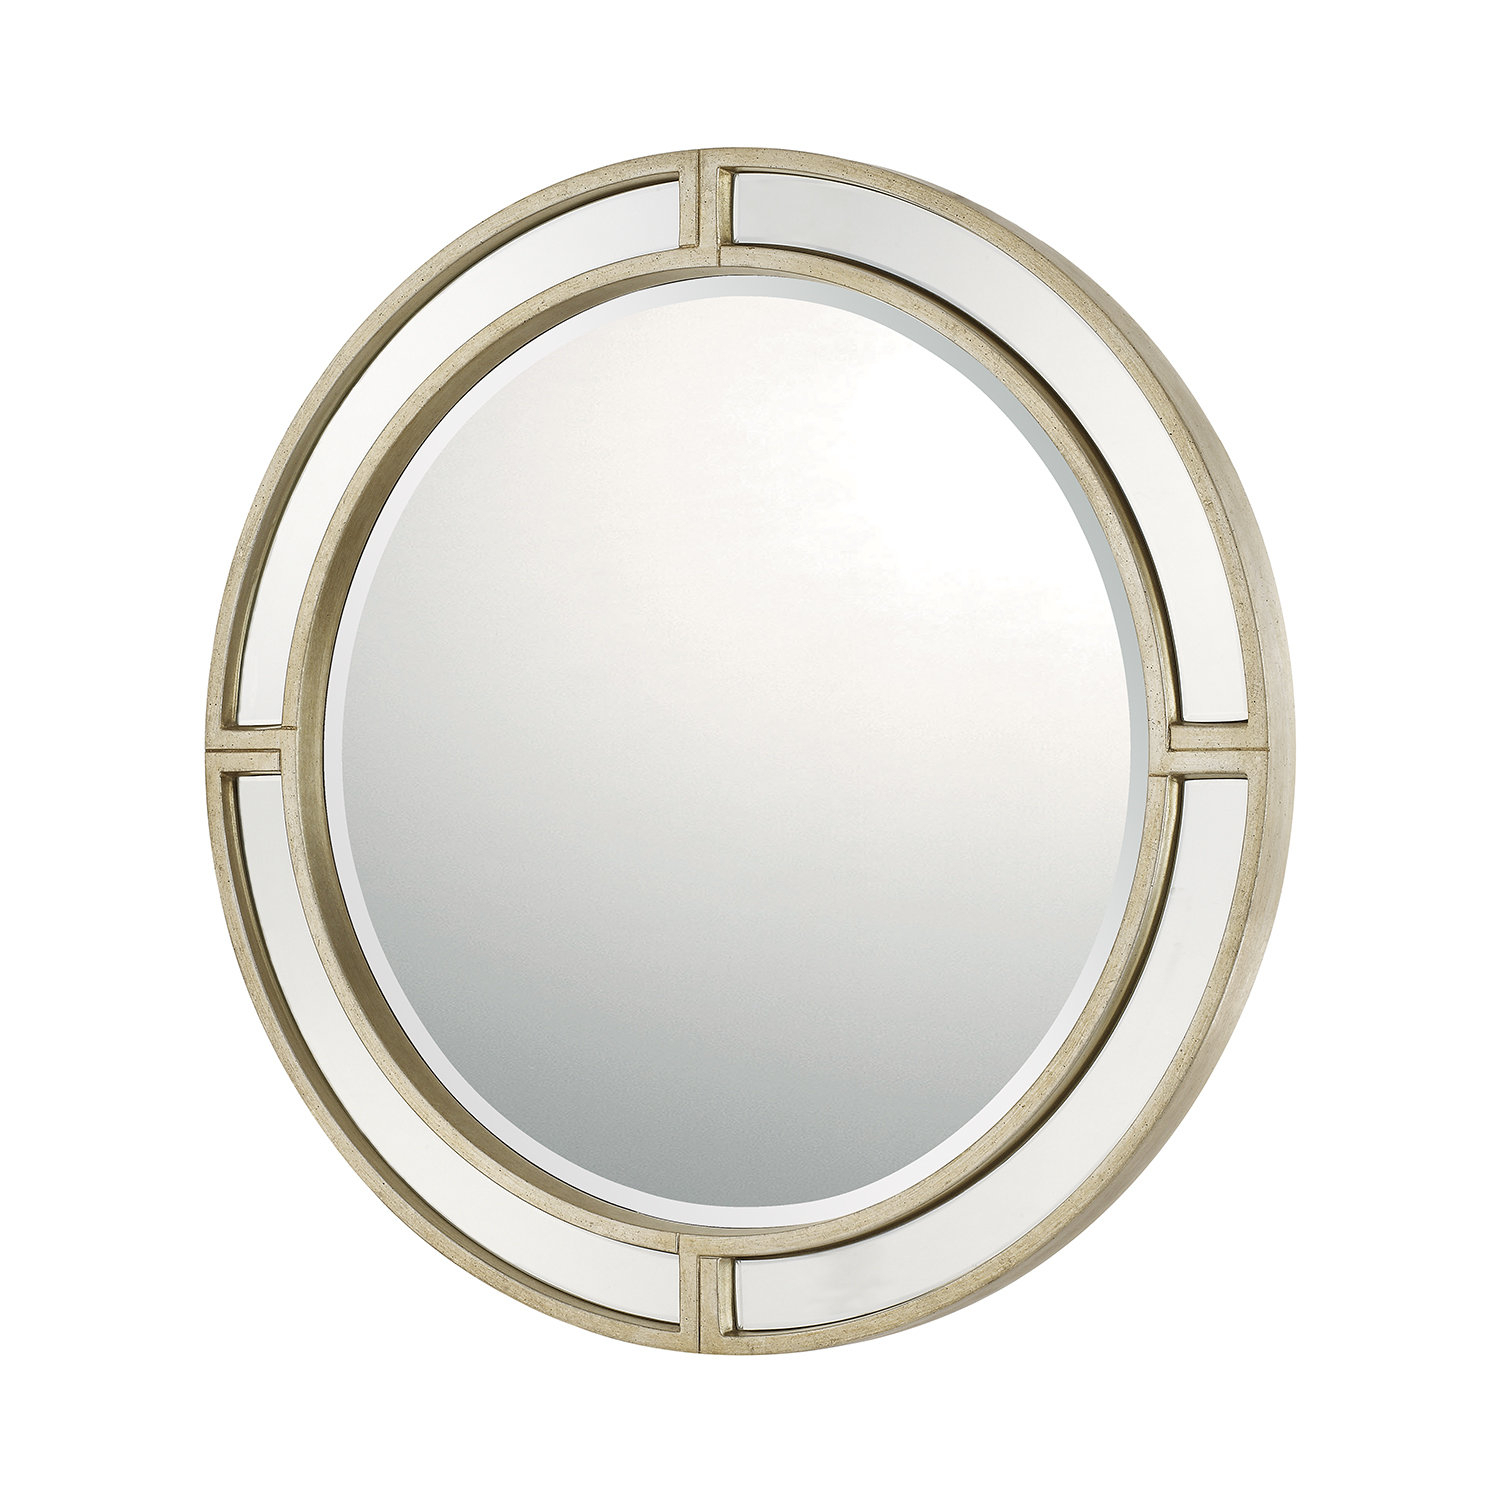 Round Glam Decorative Accent Wall Mirror Inside Pfister Oval Wood Wall Mirrors (Image 20 of 20)